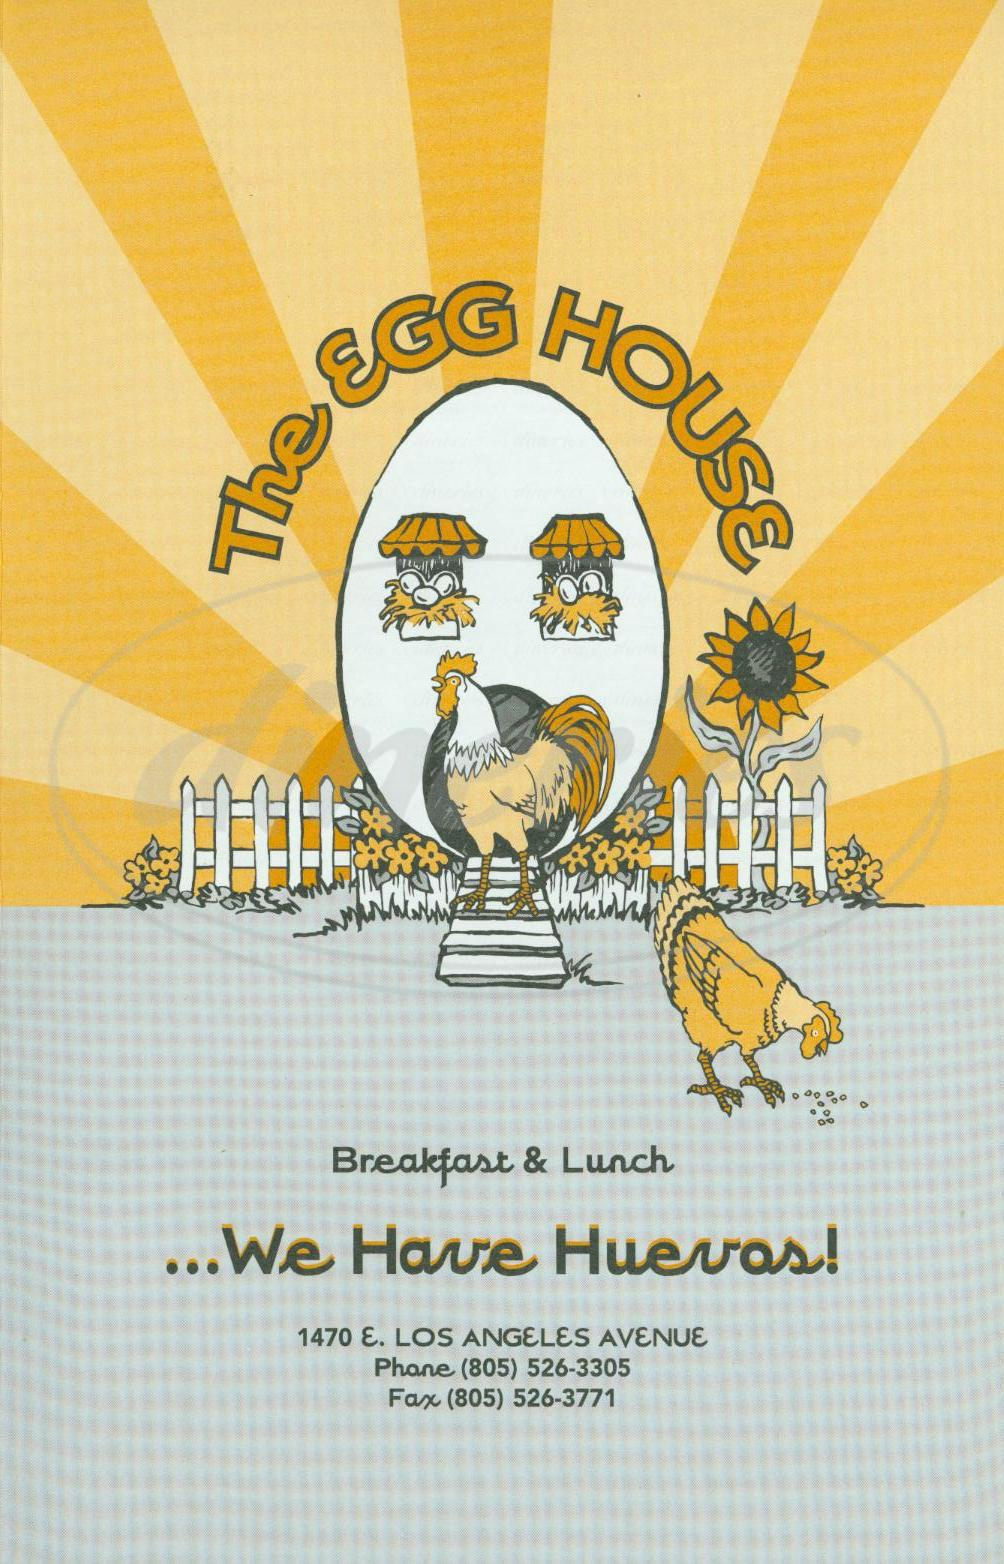 menu for The Egg House